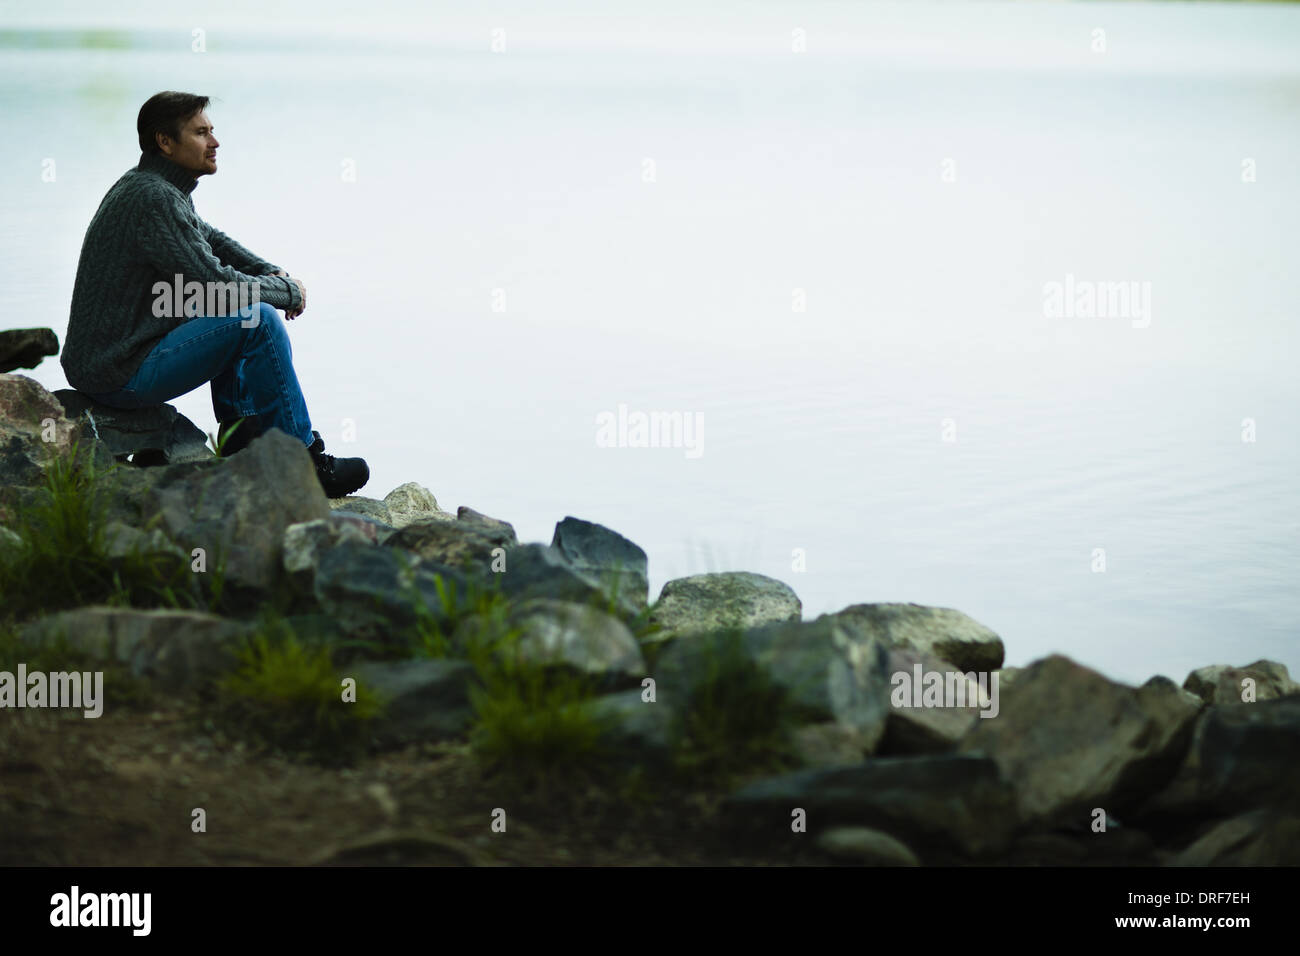 Colorado USA middle-aged man sitting on rocks looking pensive Photo Stock